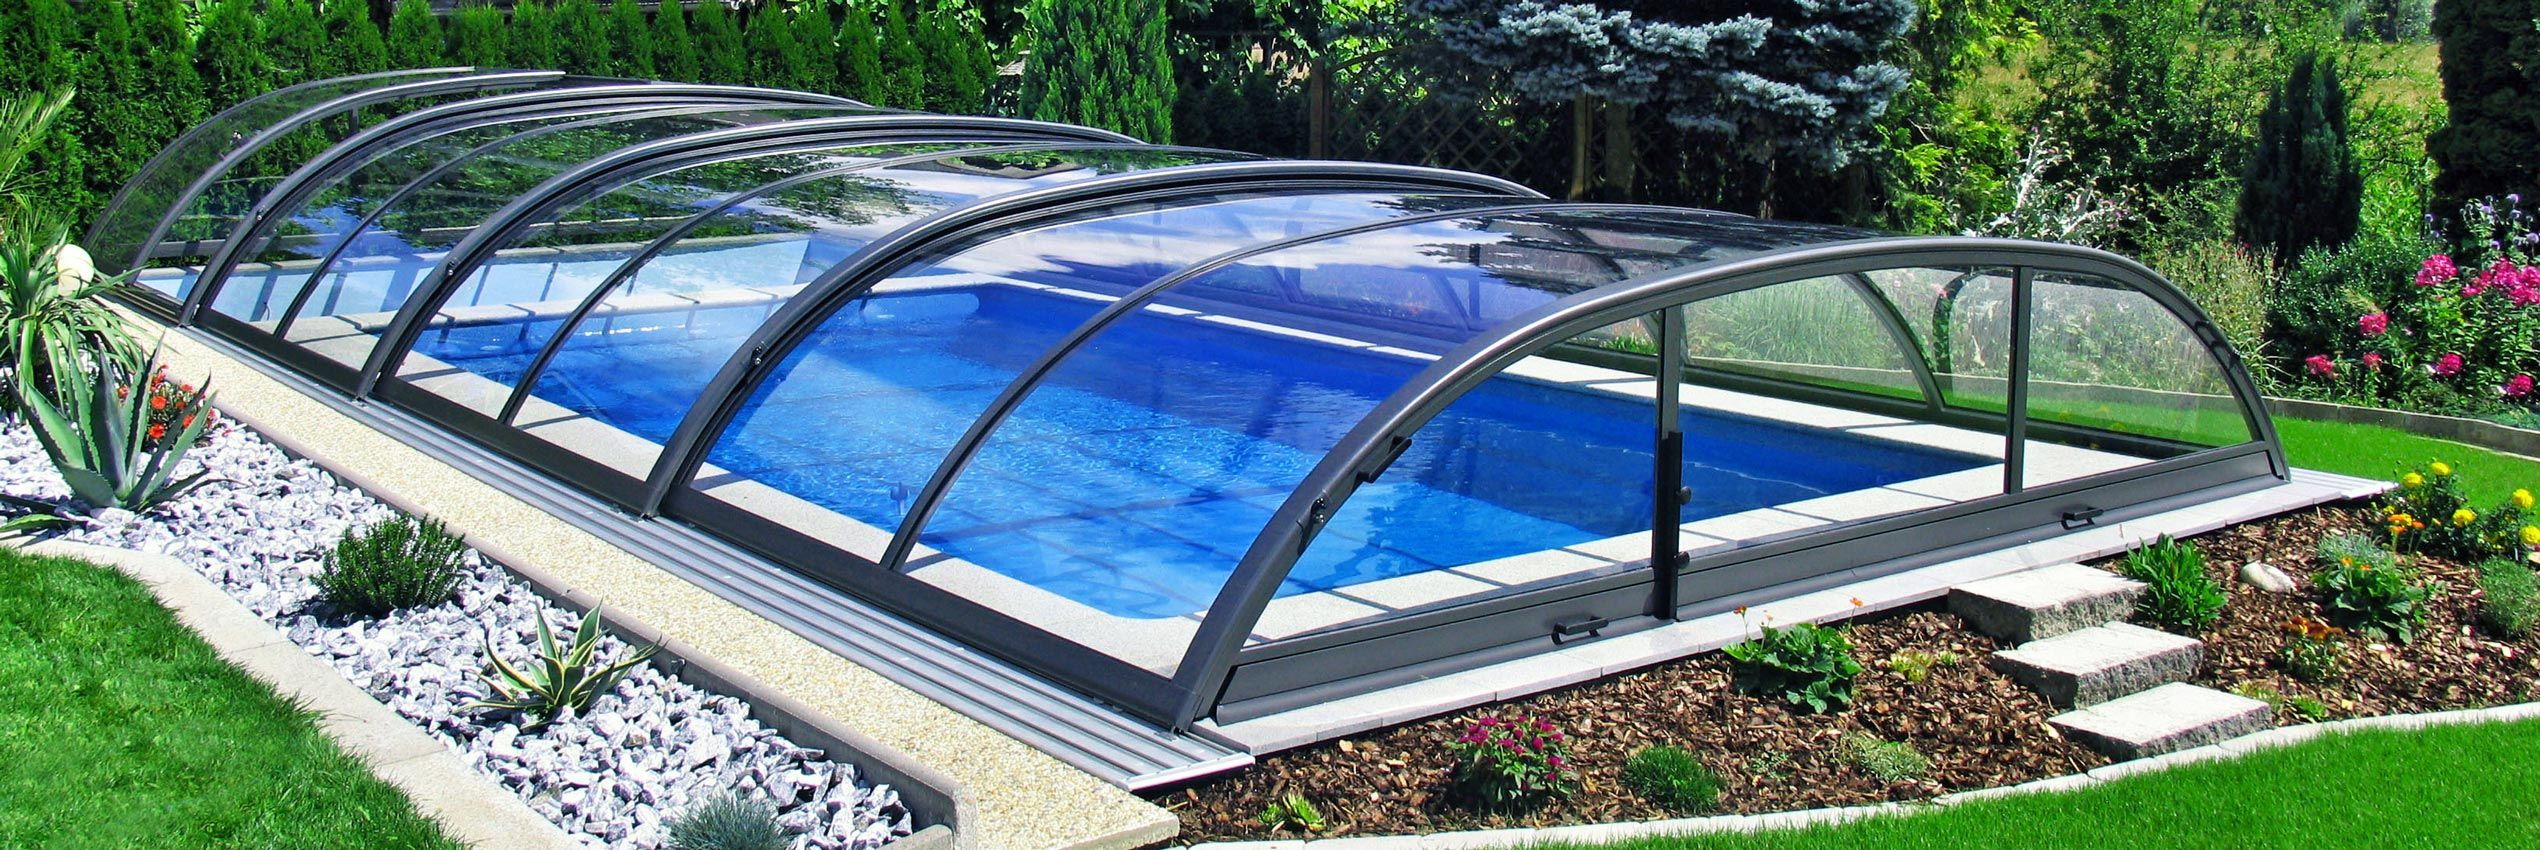 Closed pool enclosure Elegant NEO